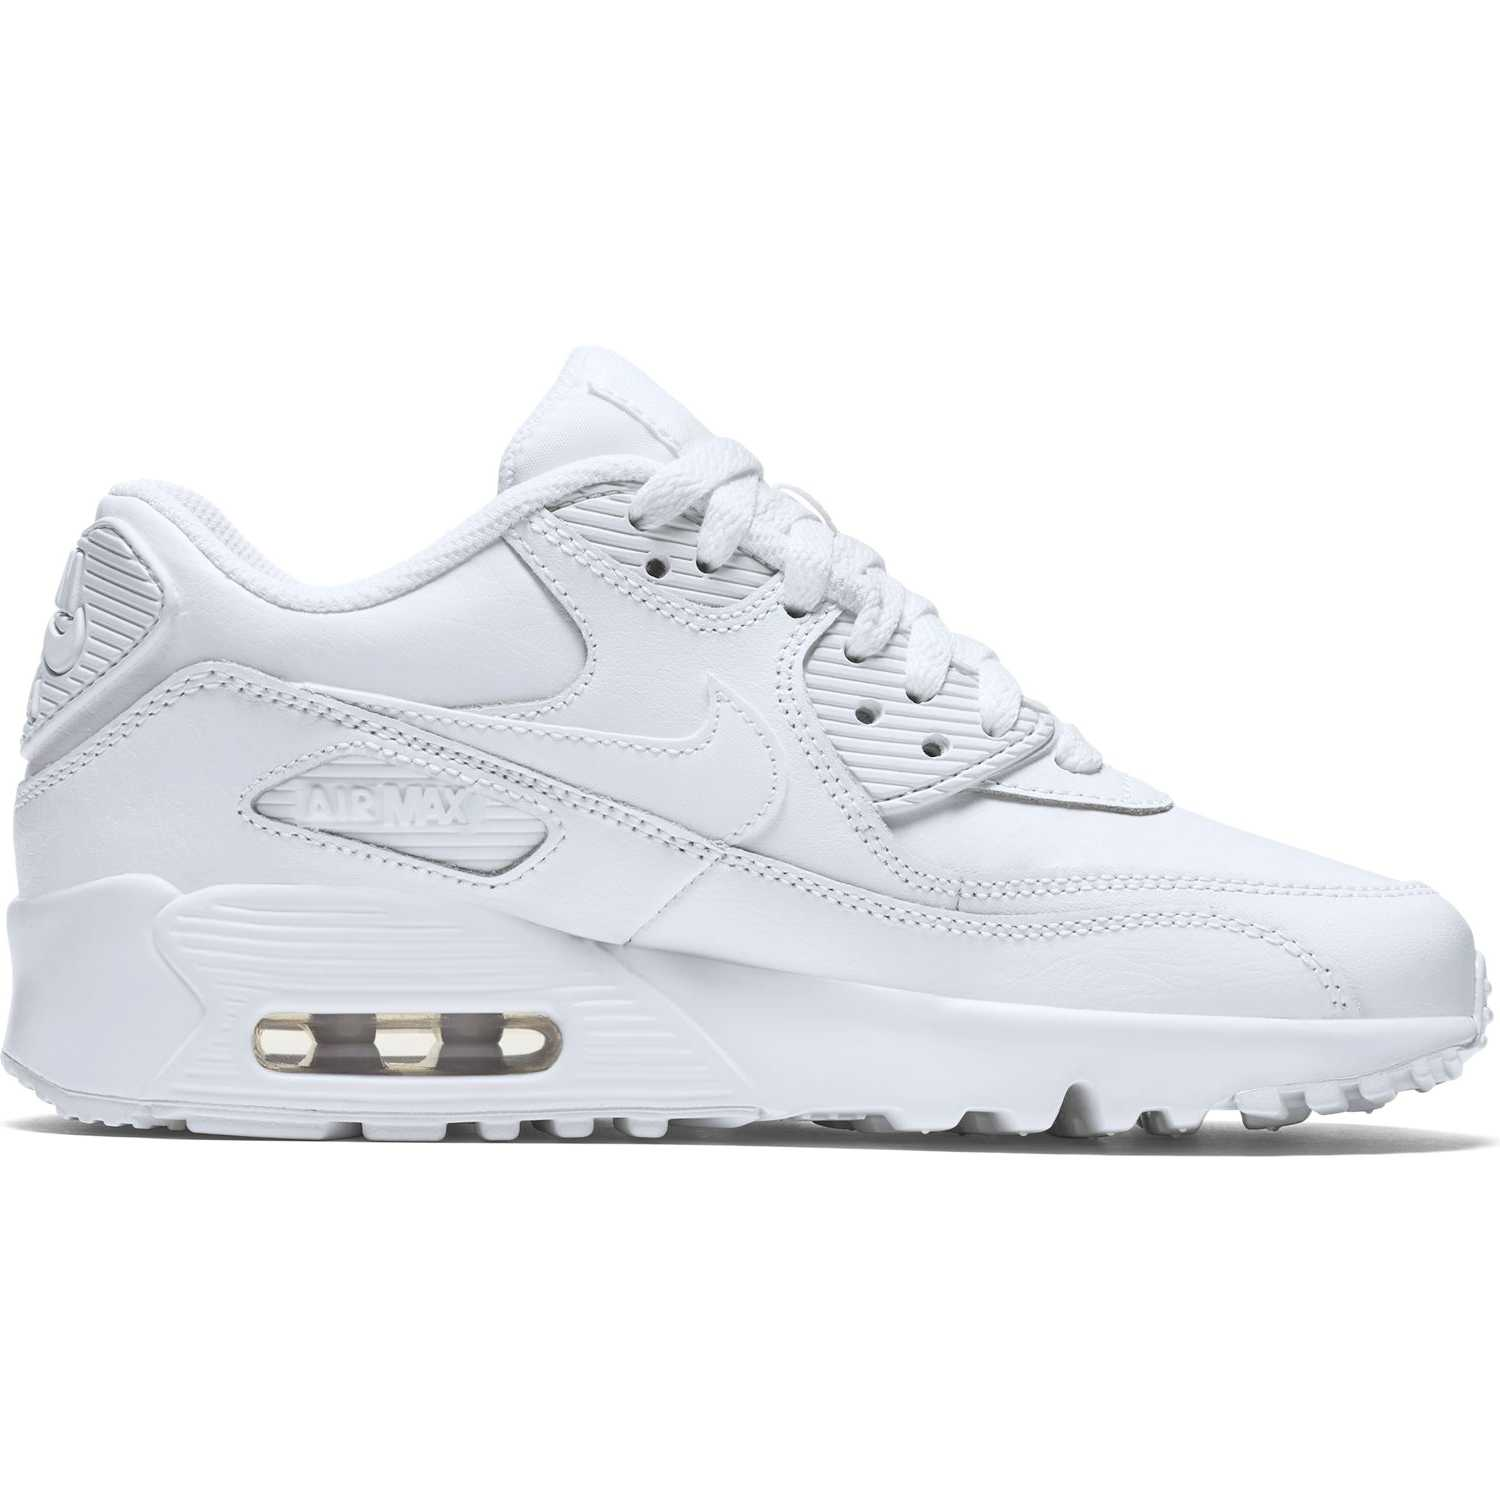 nike air max 90 leather all white 833412 100 sneaker shop. Black Bedroom Furniture Sets. Home Design Ideas